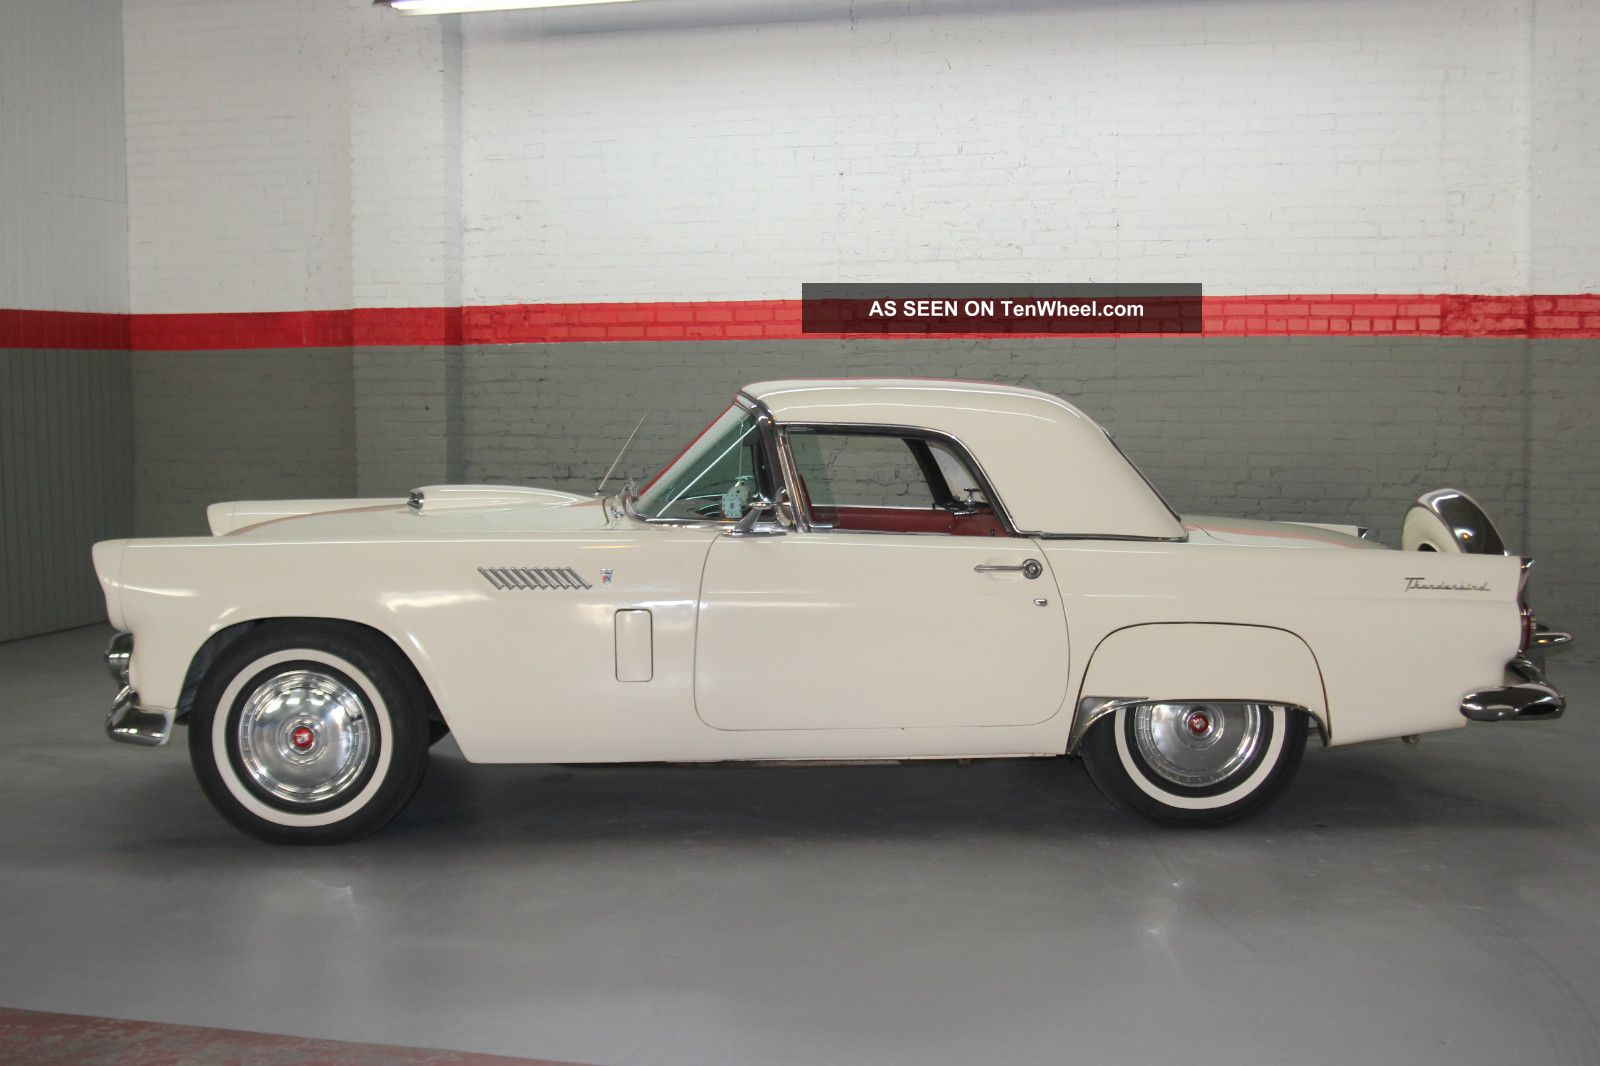 1956 Ford Thunderbird Both Hard And Soft Tops & Continental Kit - Colonial White Thunderbird photo